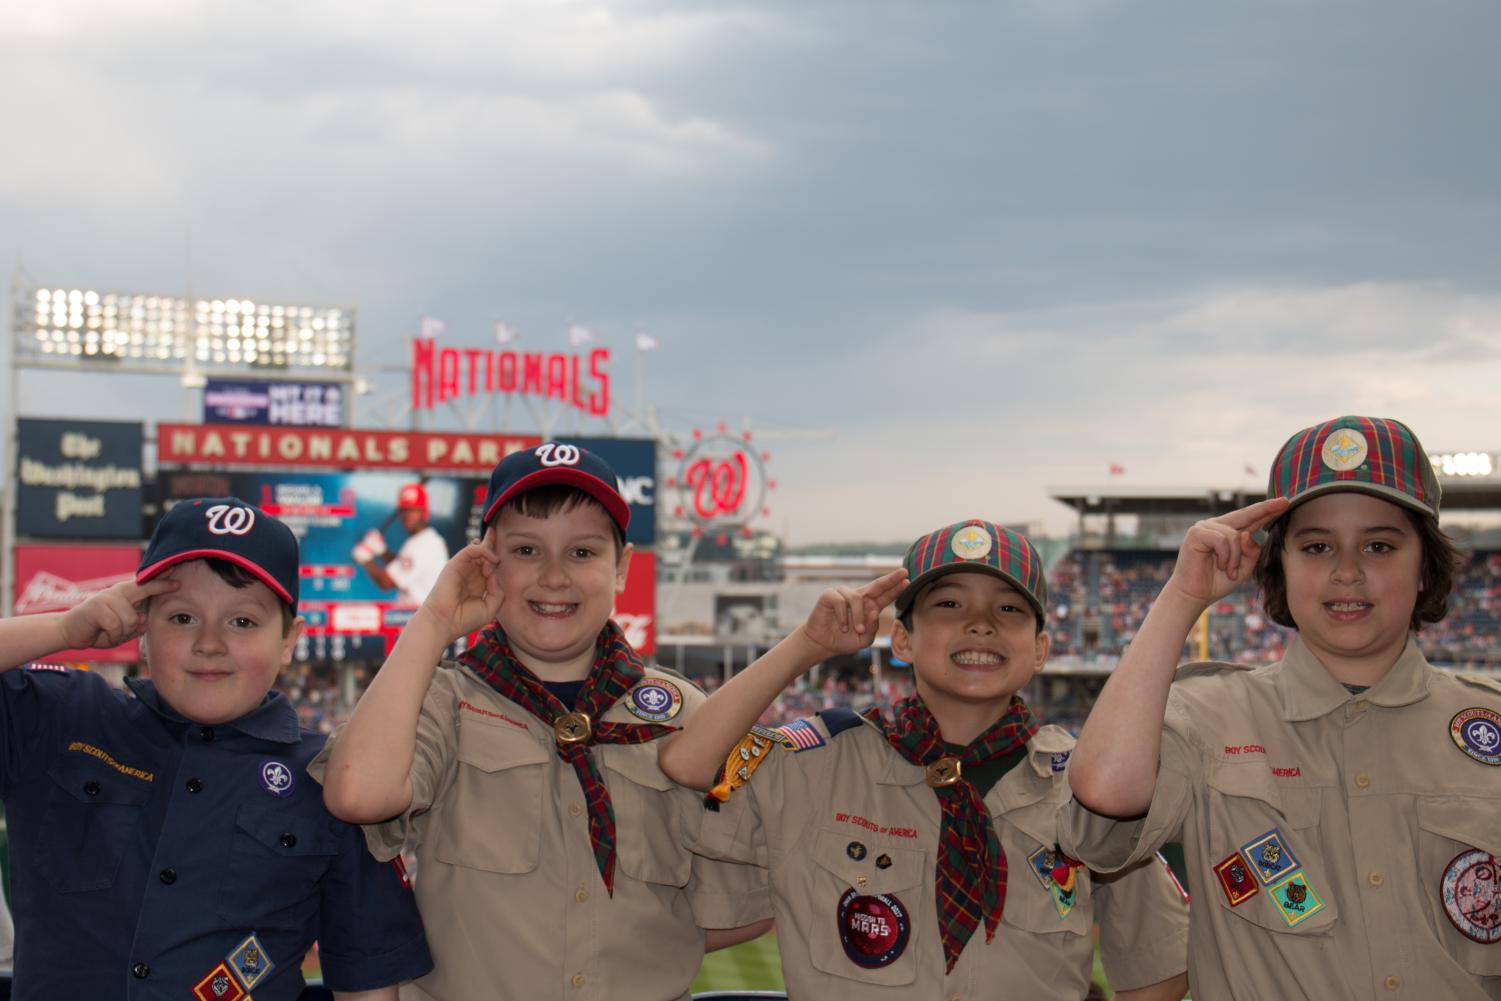 Boy Scouts of America is a youth development organization that works to build character. The program announced it will change its name to Scouts BSA. Photo courtesy Aaron Chusid.